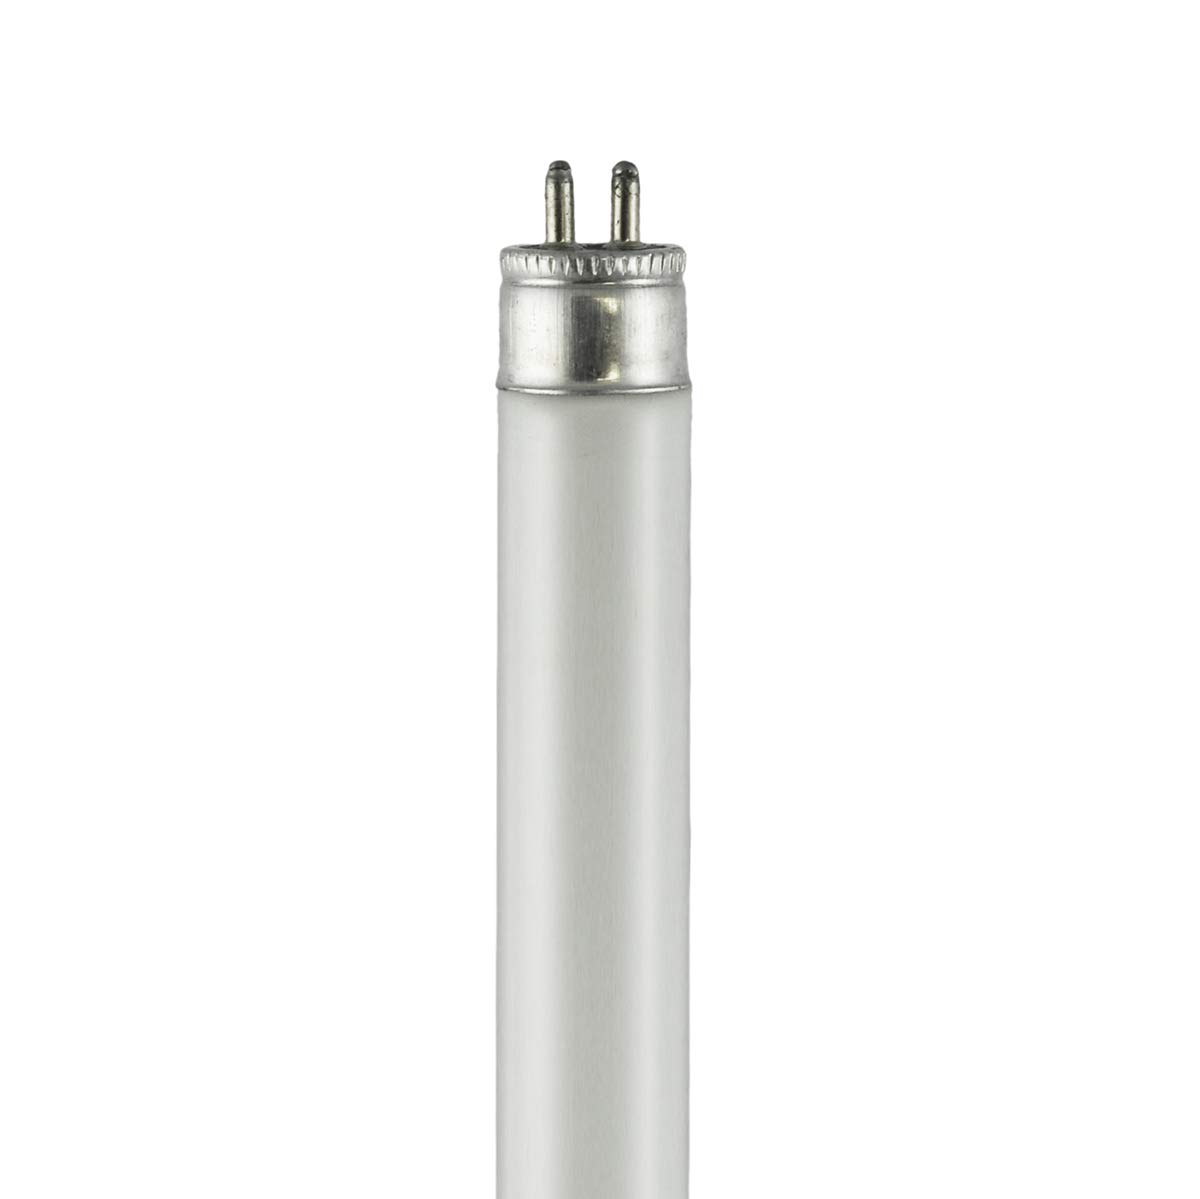 Norman Lamps F10T5-CW Fluorescent Lamp, Pack of 1